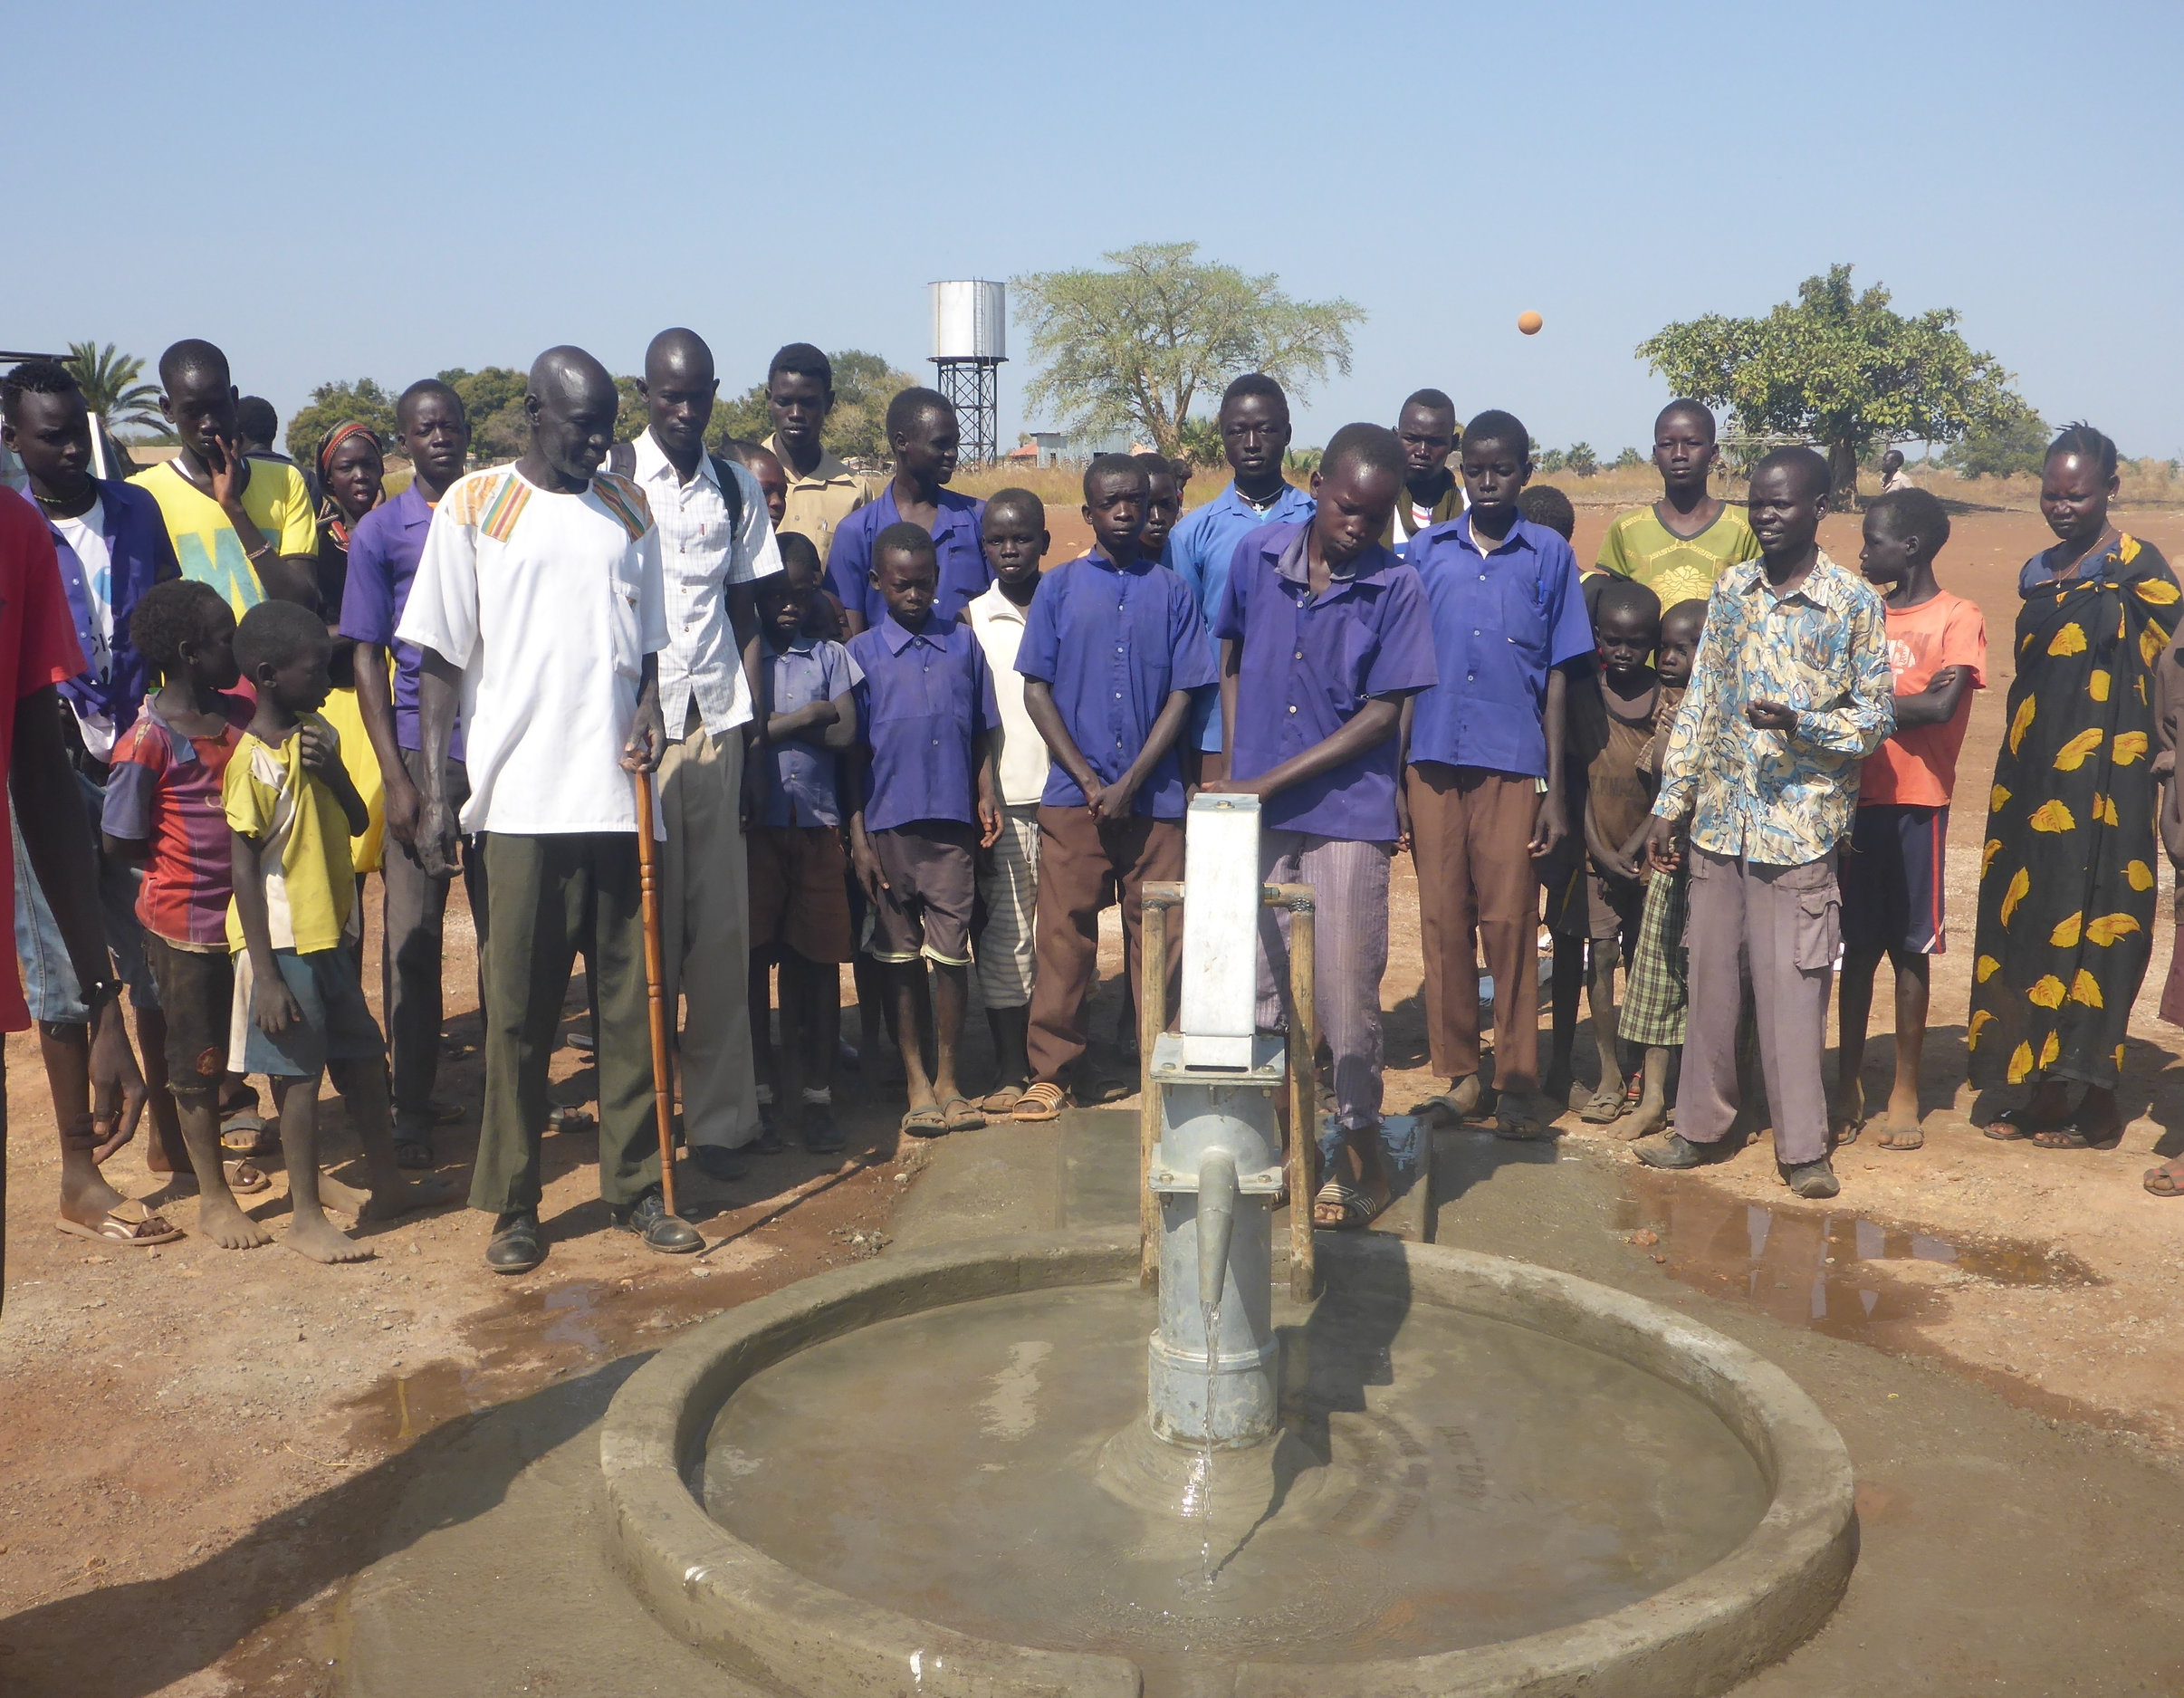 the first well of the 2017-18 season was drilled for the zagalona primary school in wau, site of wfss's pilot sanitation project.